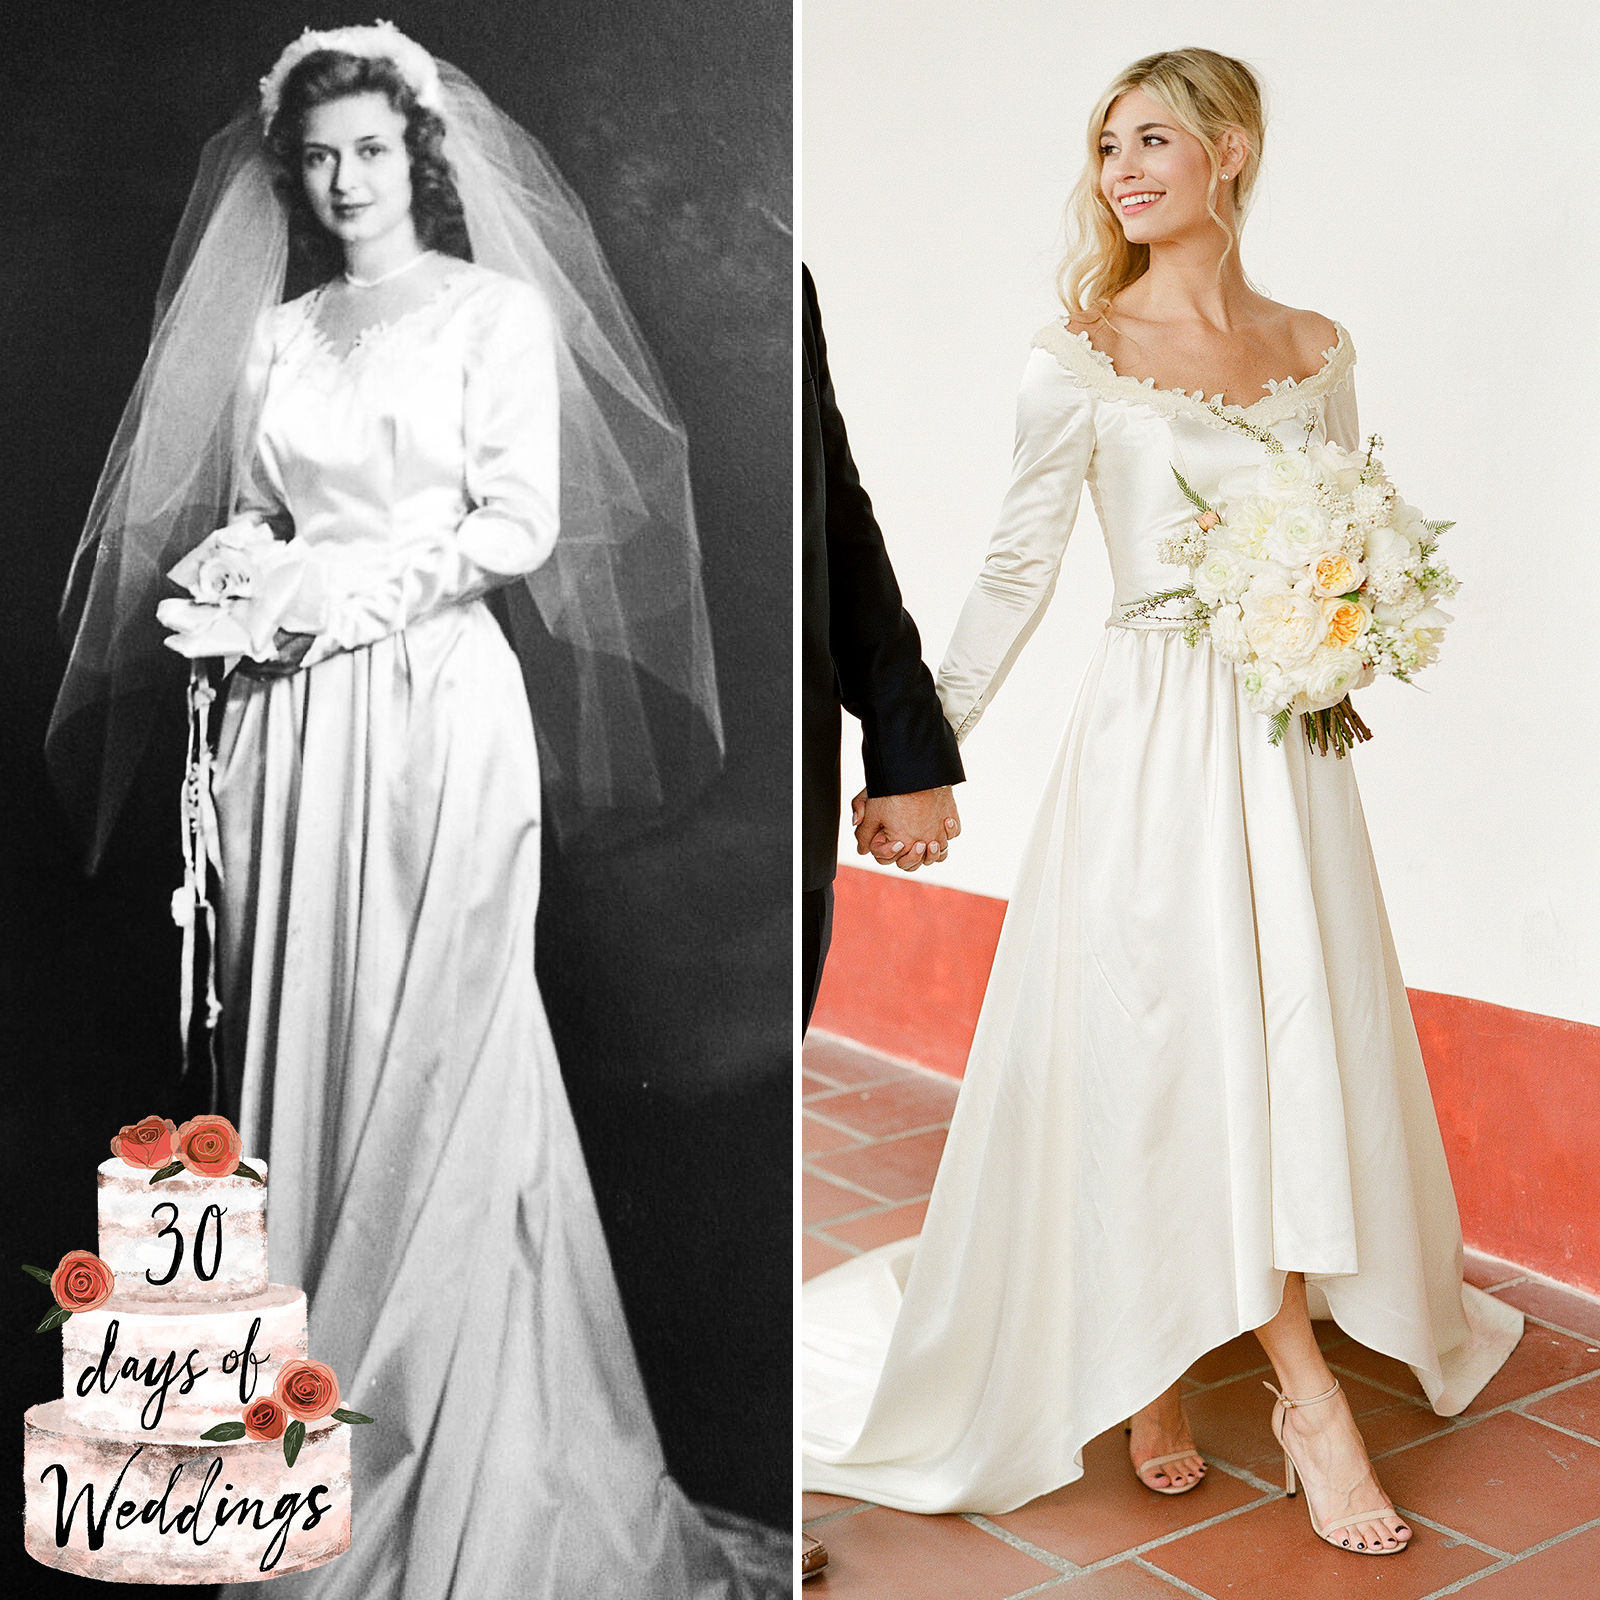 I Altered my Grandmother's Wedding Dress to Wear at my Wedding